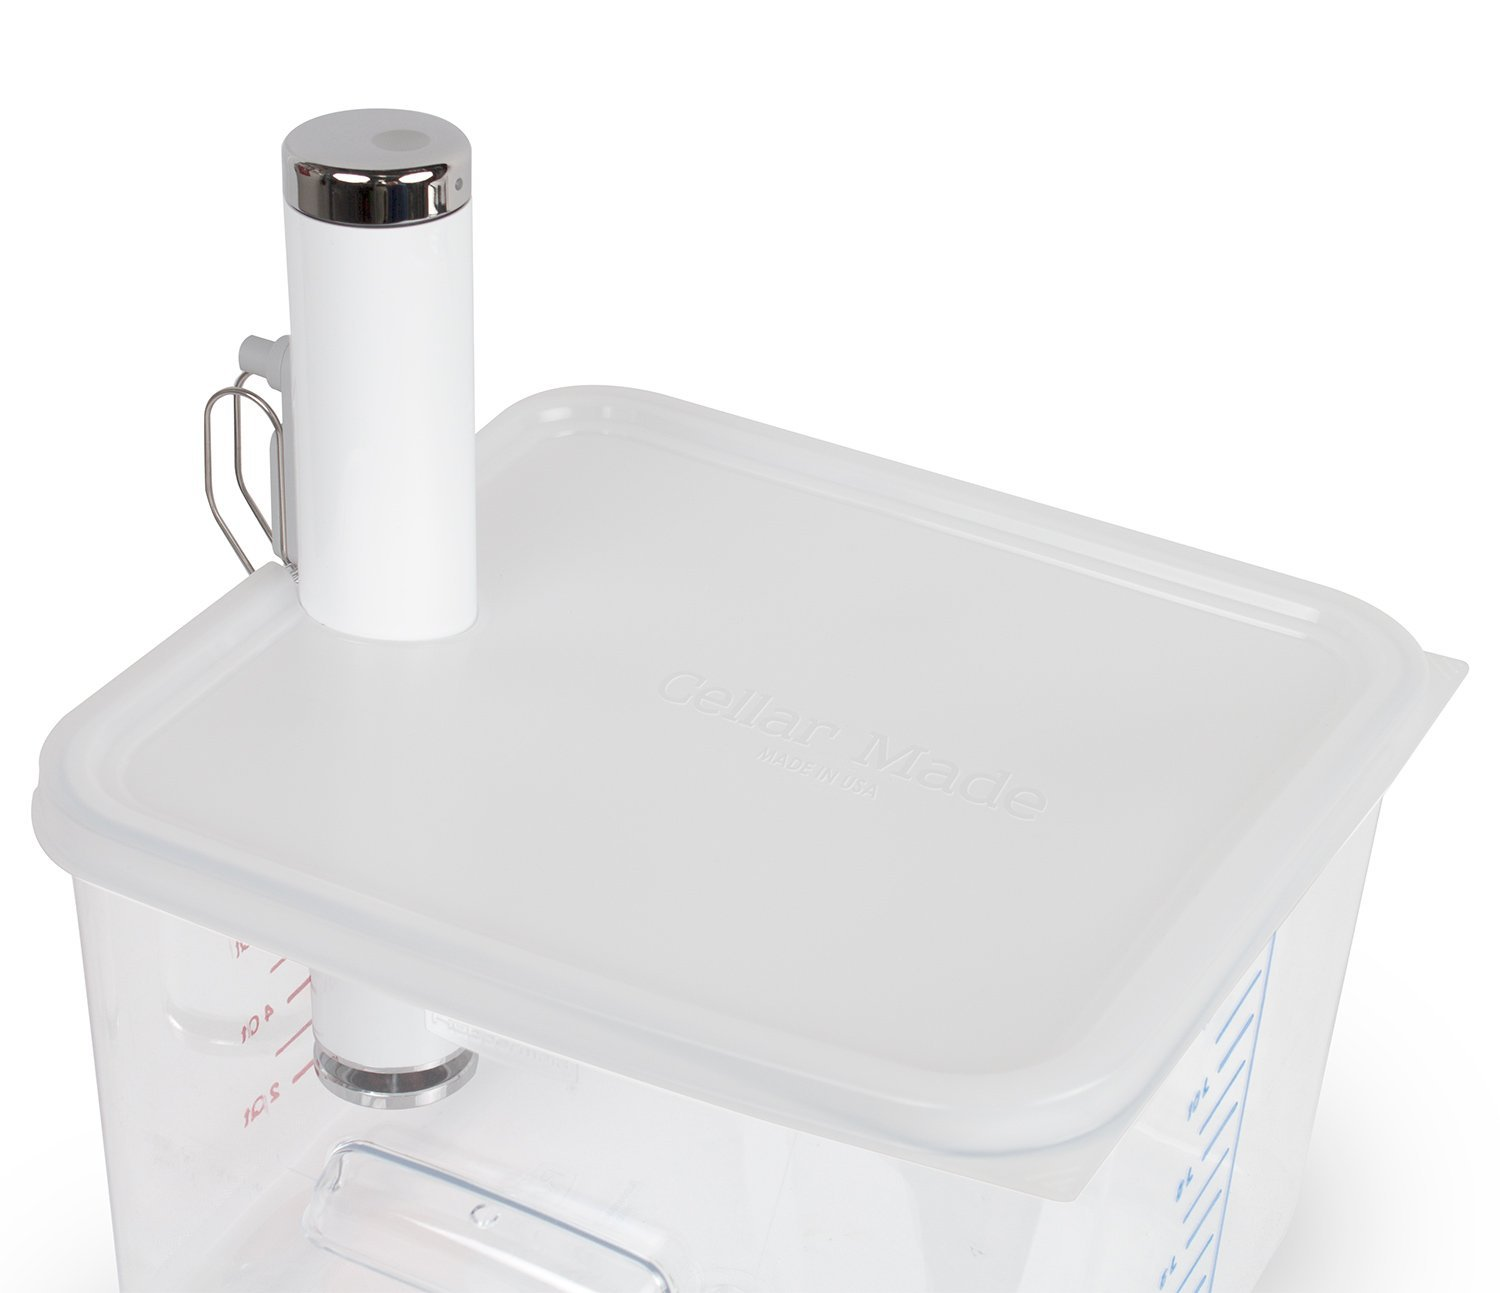 Cellar Made Sous Vide Lid for ChefSteps Joule fits 12, 18 & 22 Quart Rubbermaid Containers Made in USA